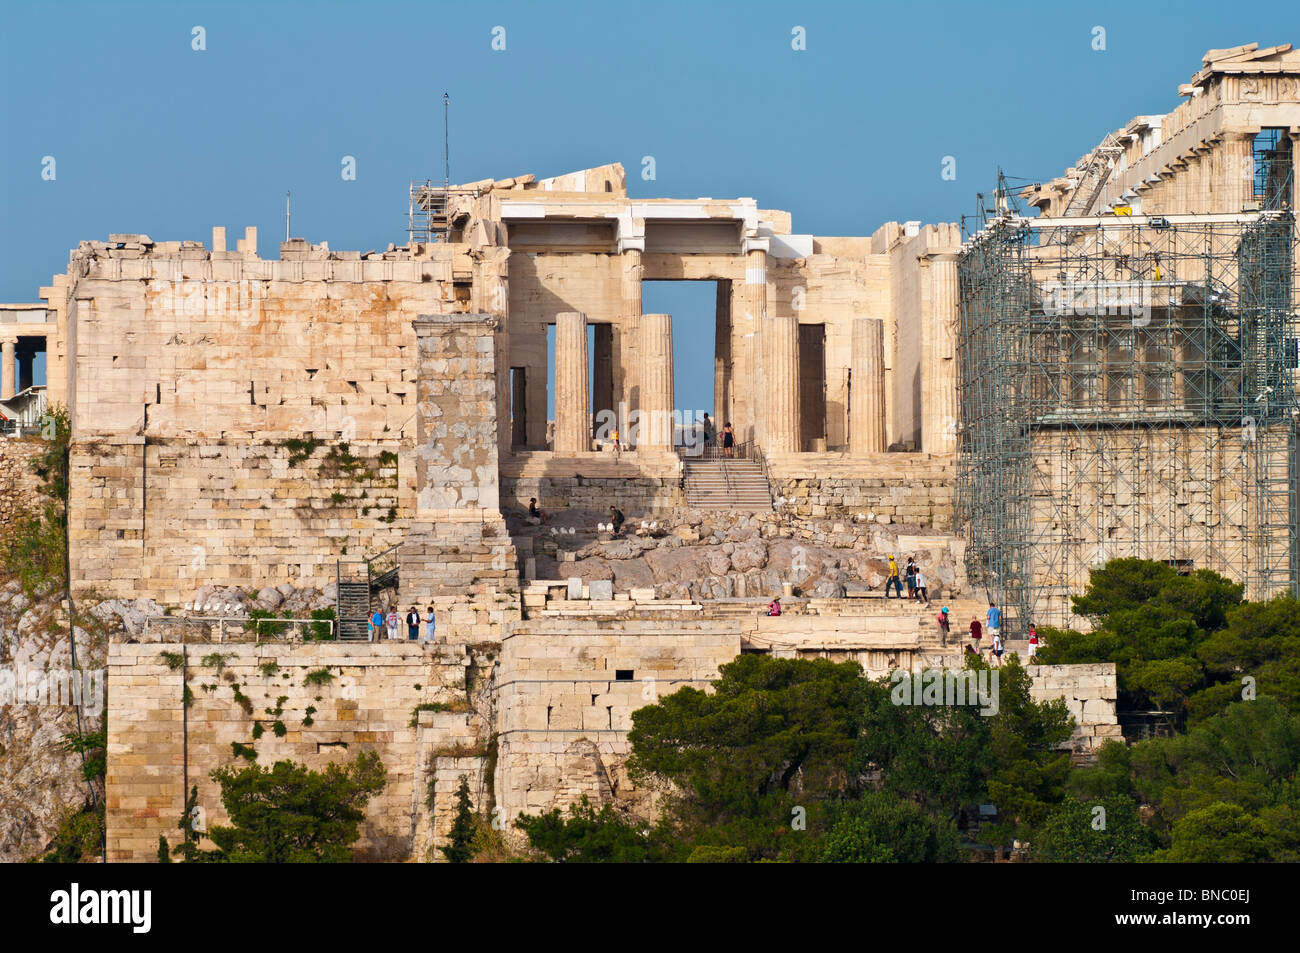 The Propylaea of the Athenian acropolis after renovation was completed in 2010. Viewed from the west. Stock Photo